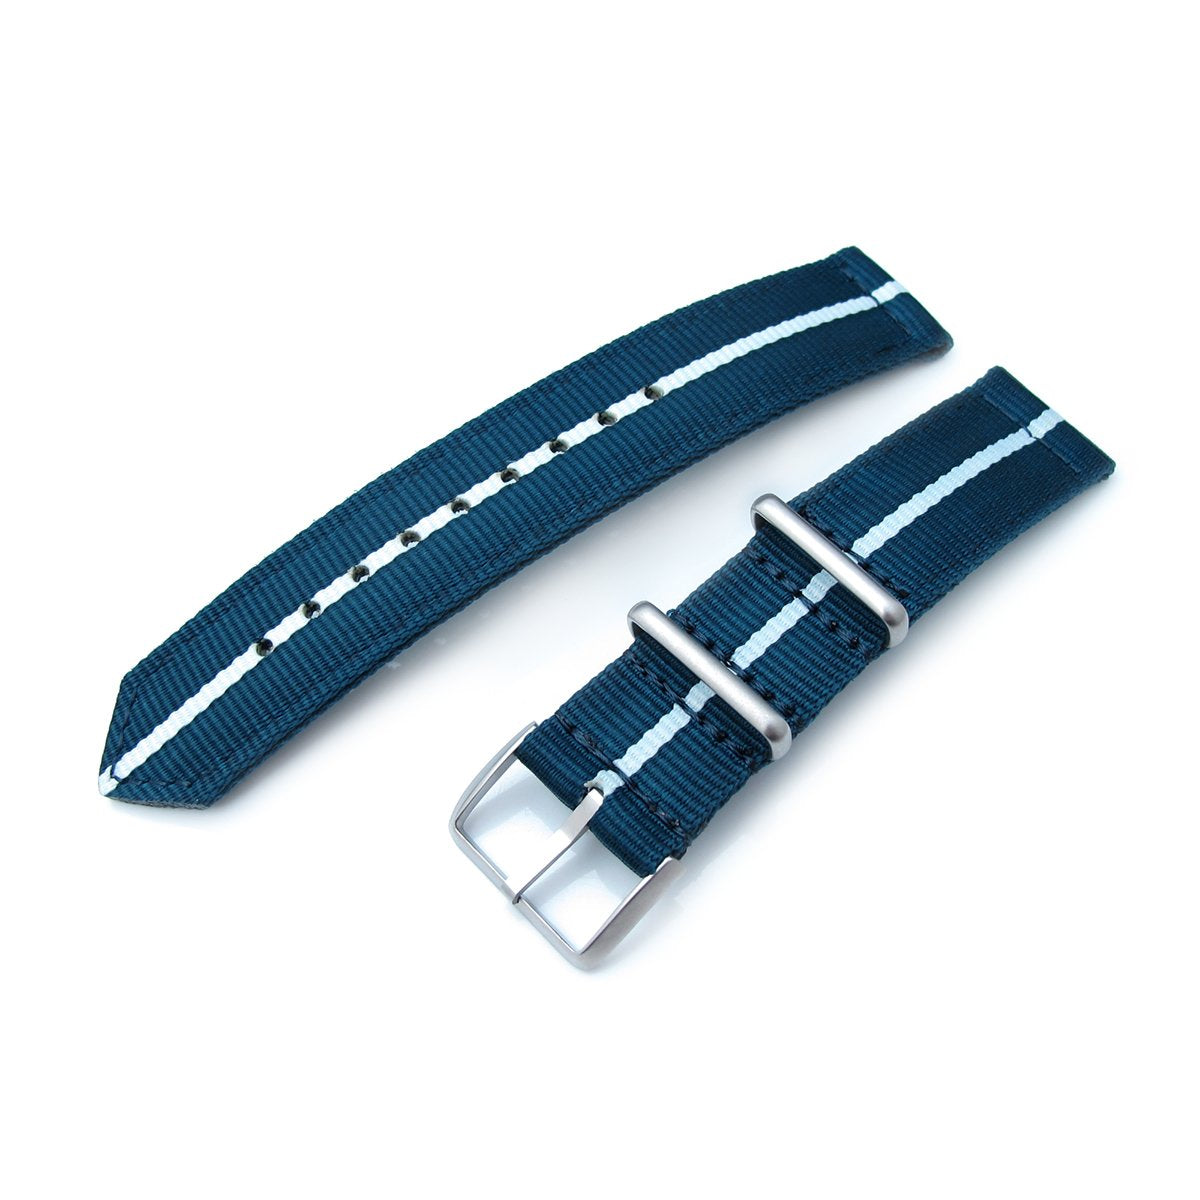 20mm Two Piece WW2 G10 Nylon Navy Blue & White Brushed Buckle Strapcode Watch Bands